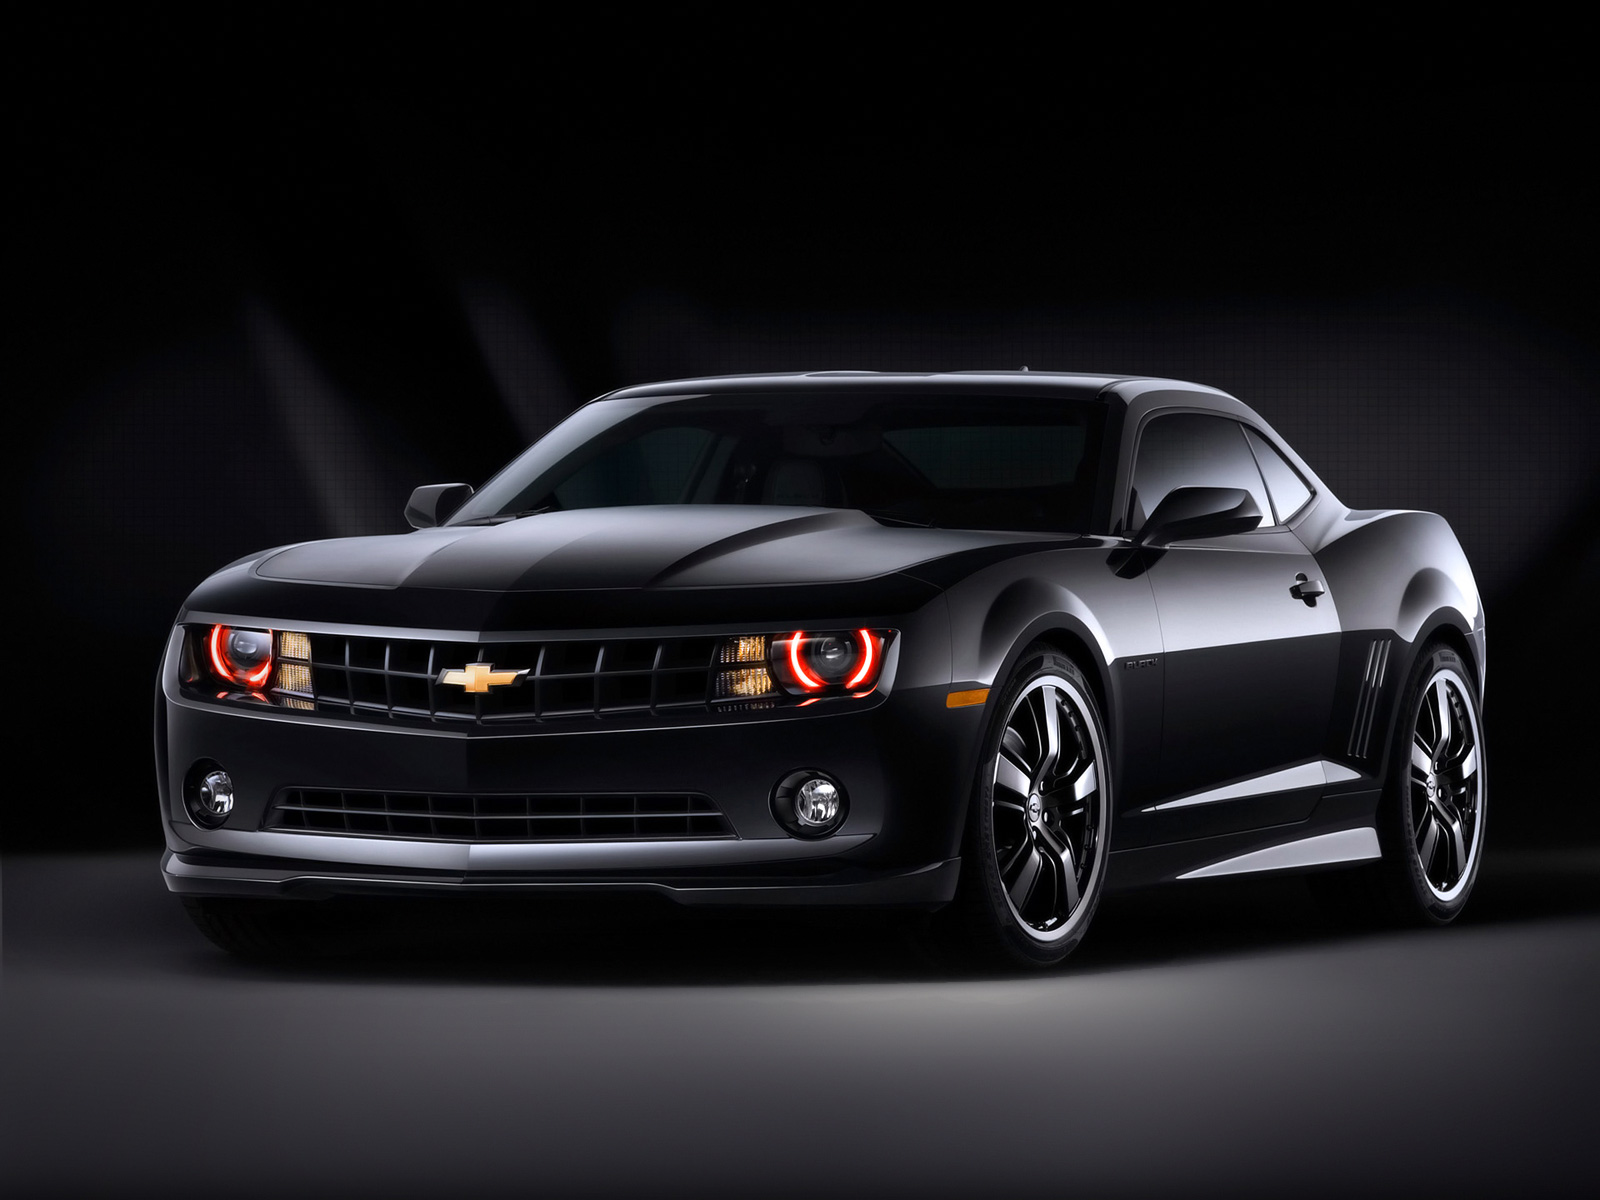 Chevrolet Camaro Pictures Wallpapers Desktop Download